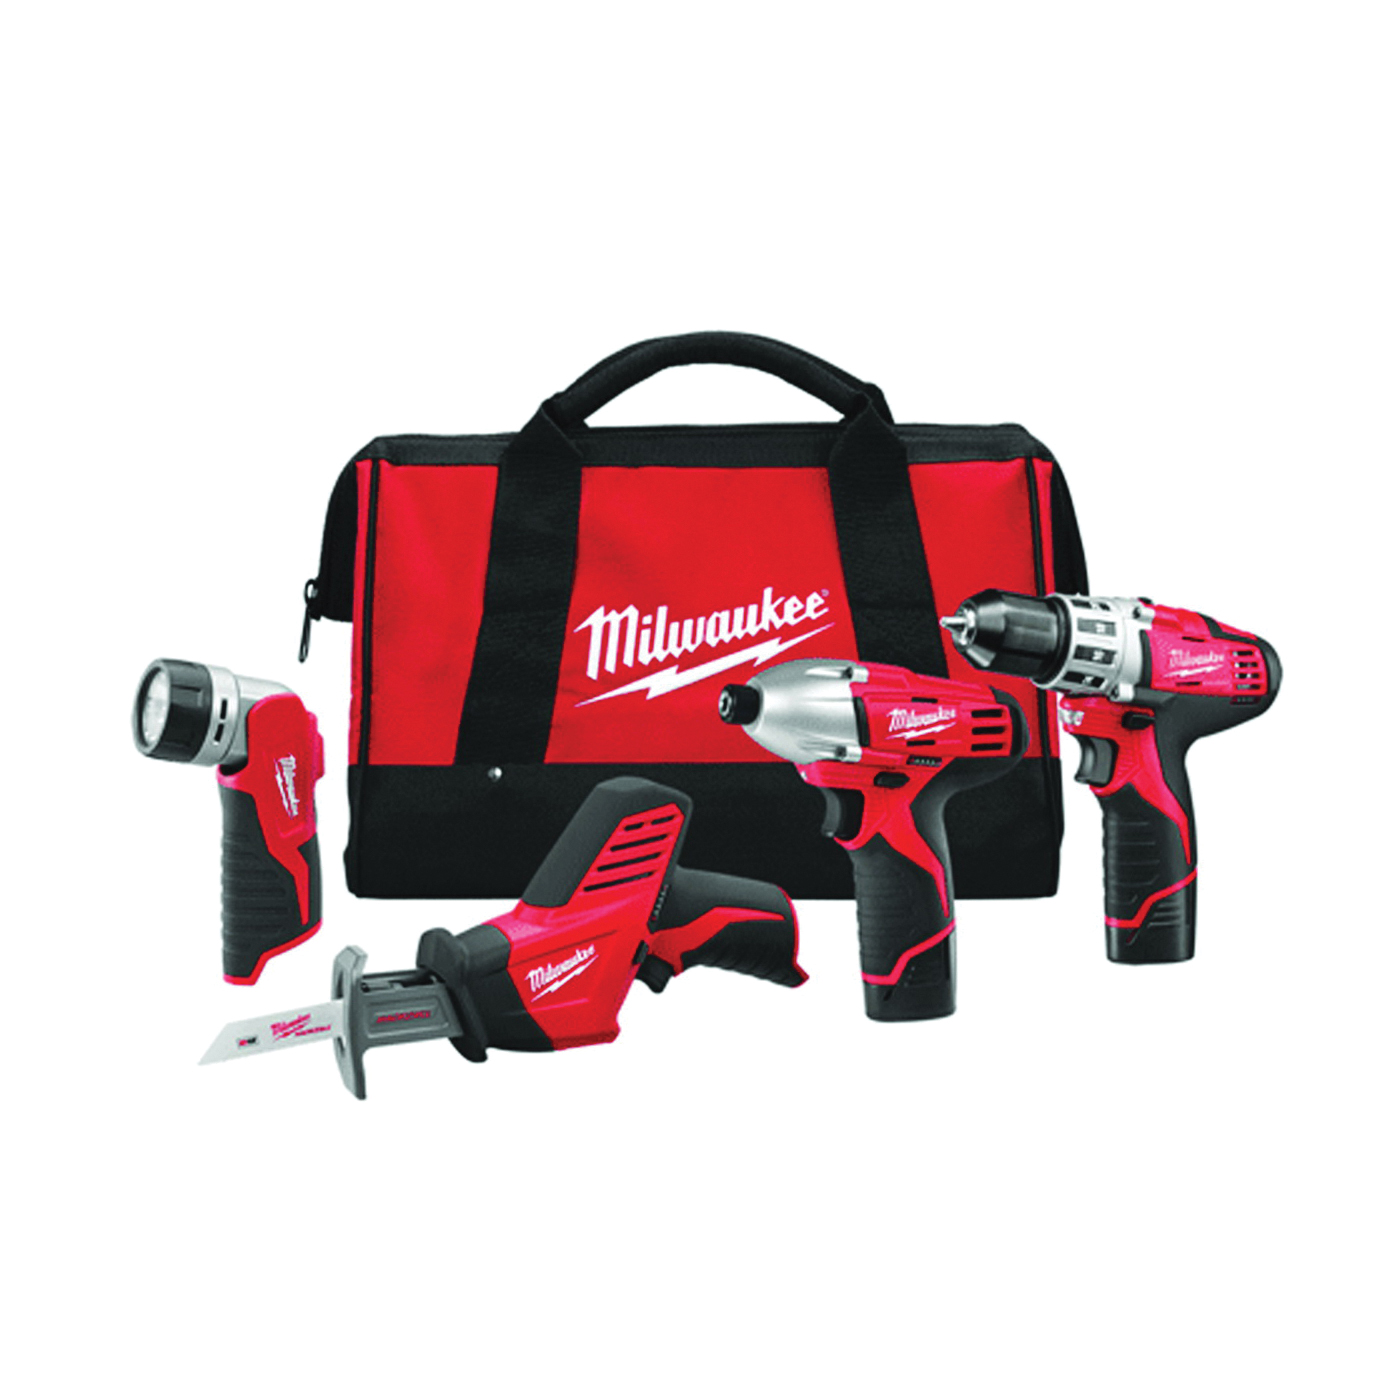 Picture of Milwaukee 2498-24 Four-Tool Combo Kit, Battery Included: No